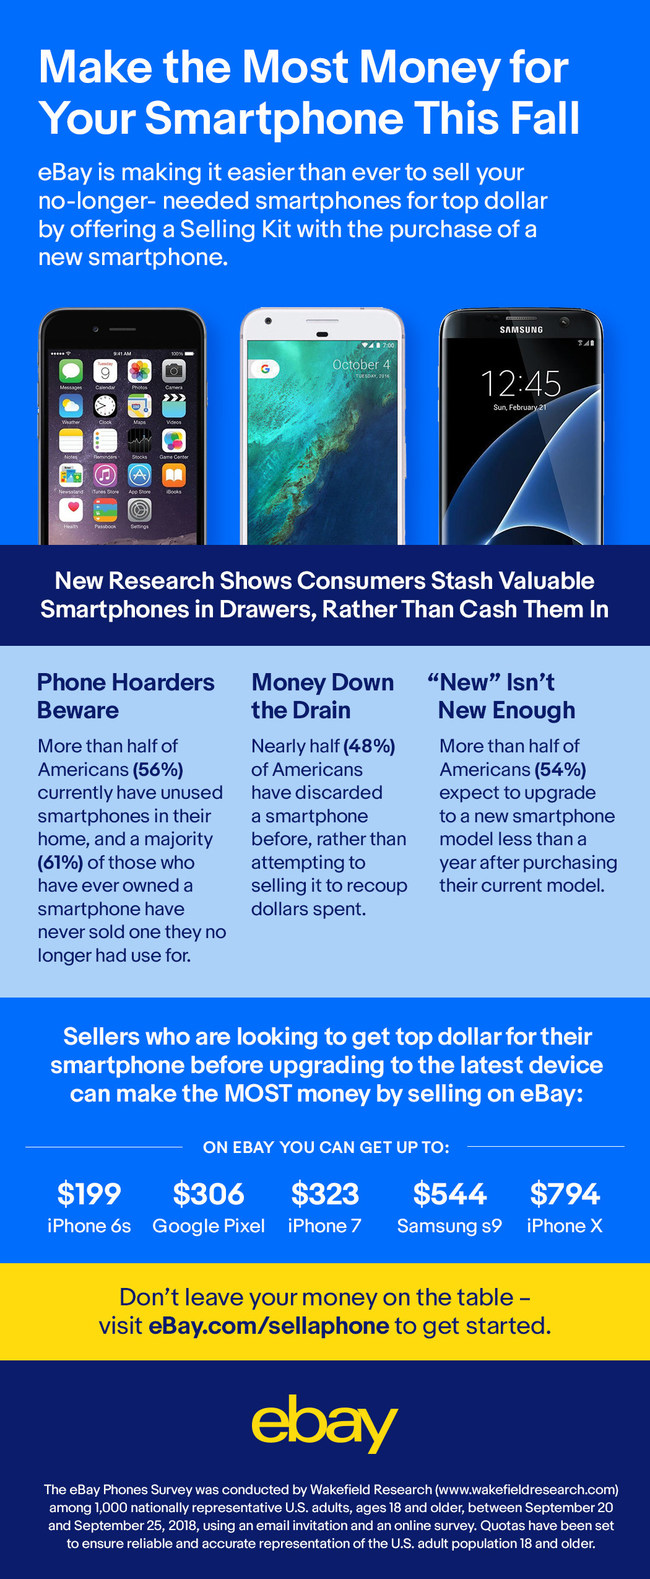 With previous generation devices, like the iPhone 8, worth over $450 dollars, eBay is making it easier than ever to earn the most money for phones this fall.